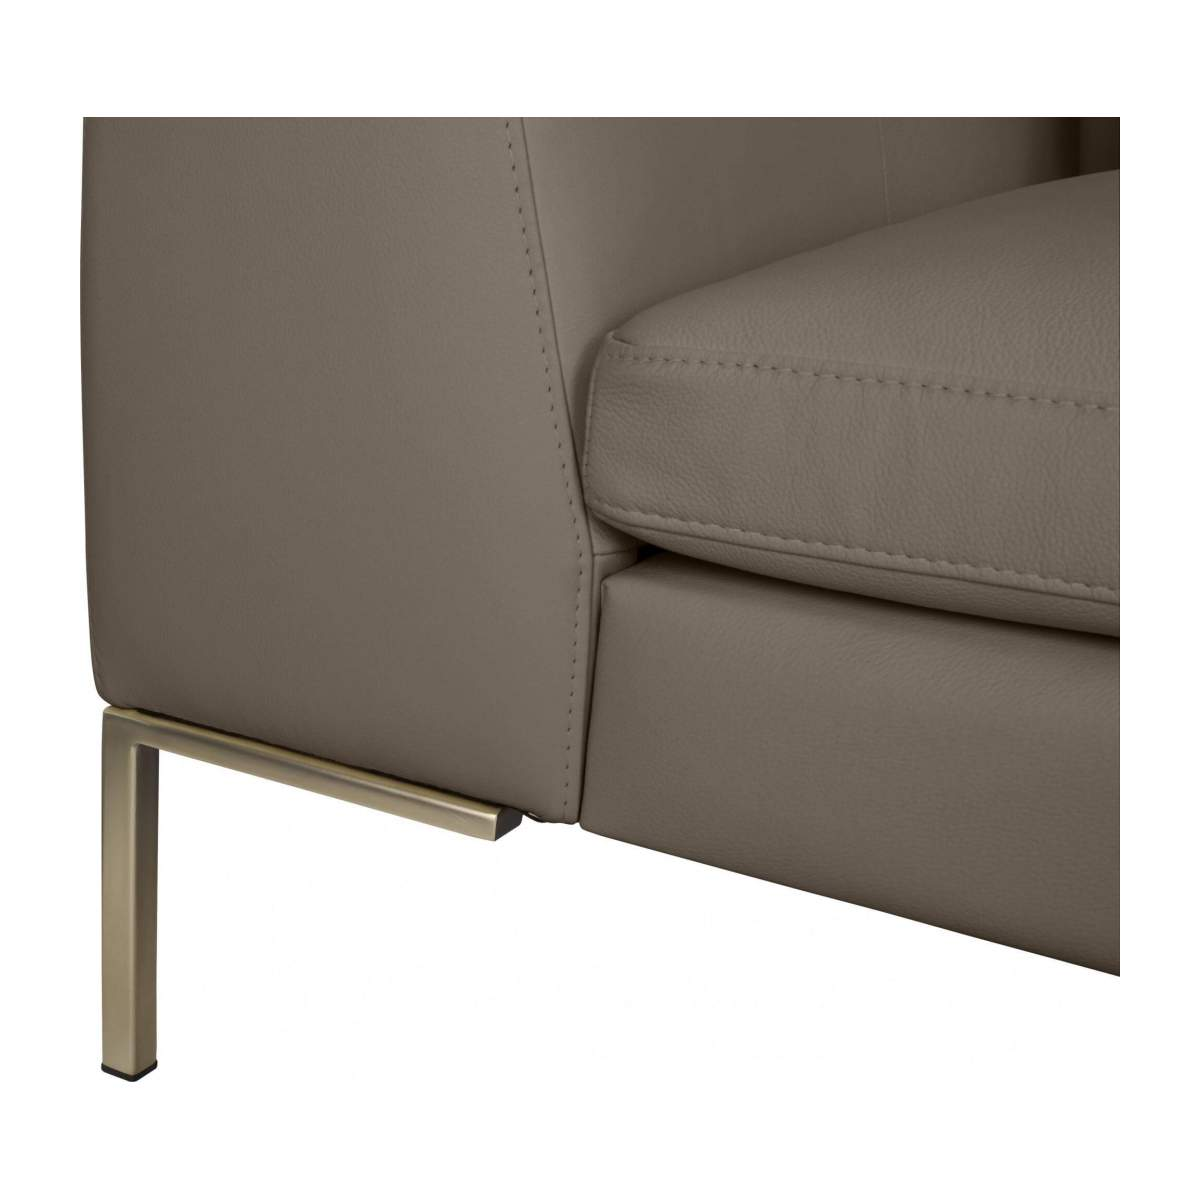 3 seater sofa in Eton veined leather, stone n°7